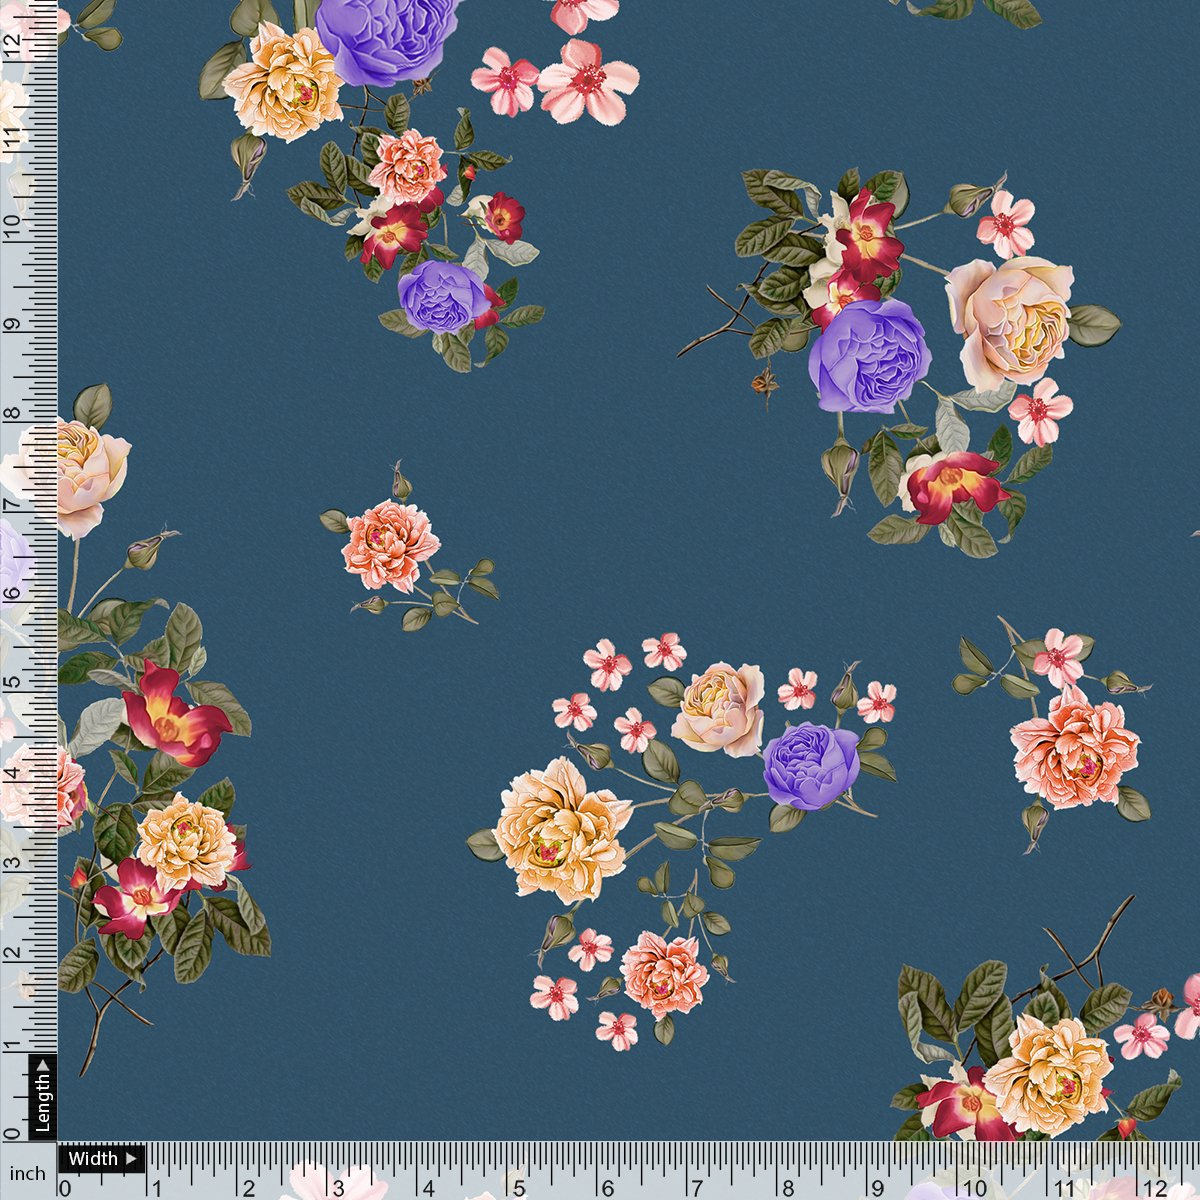 Colourful Flower Bunch Digital Printed Fabric - Weightless